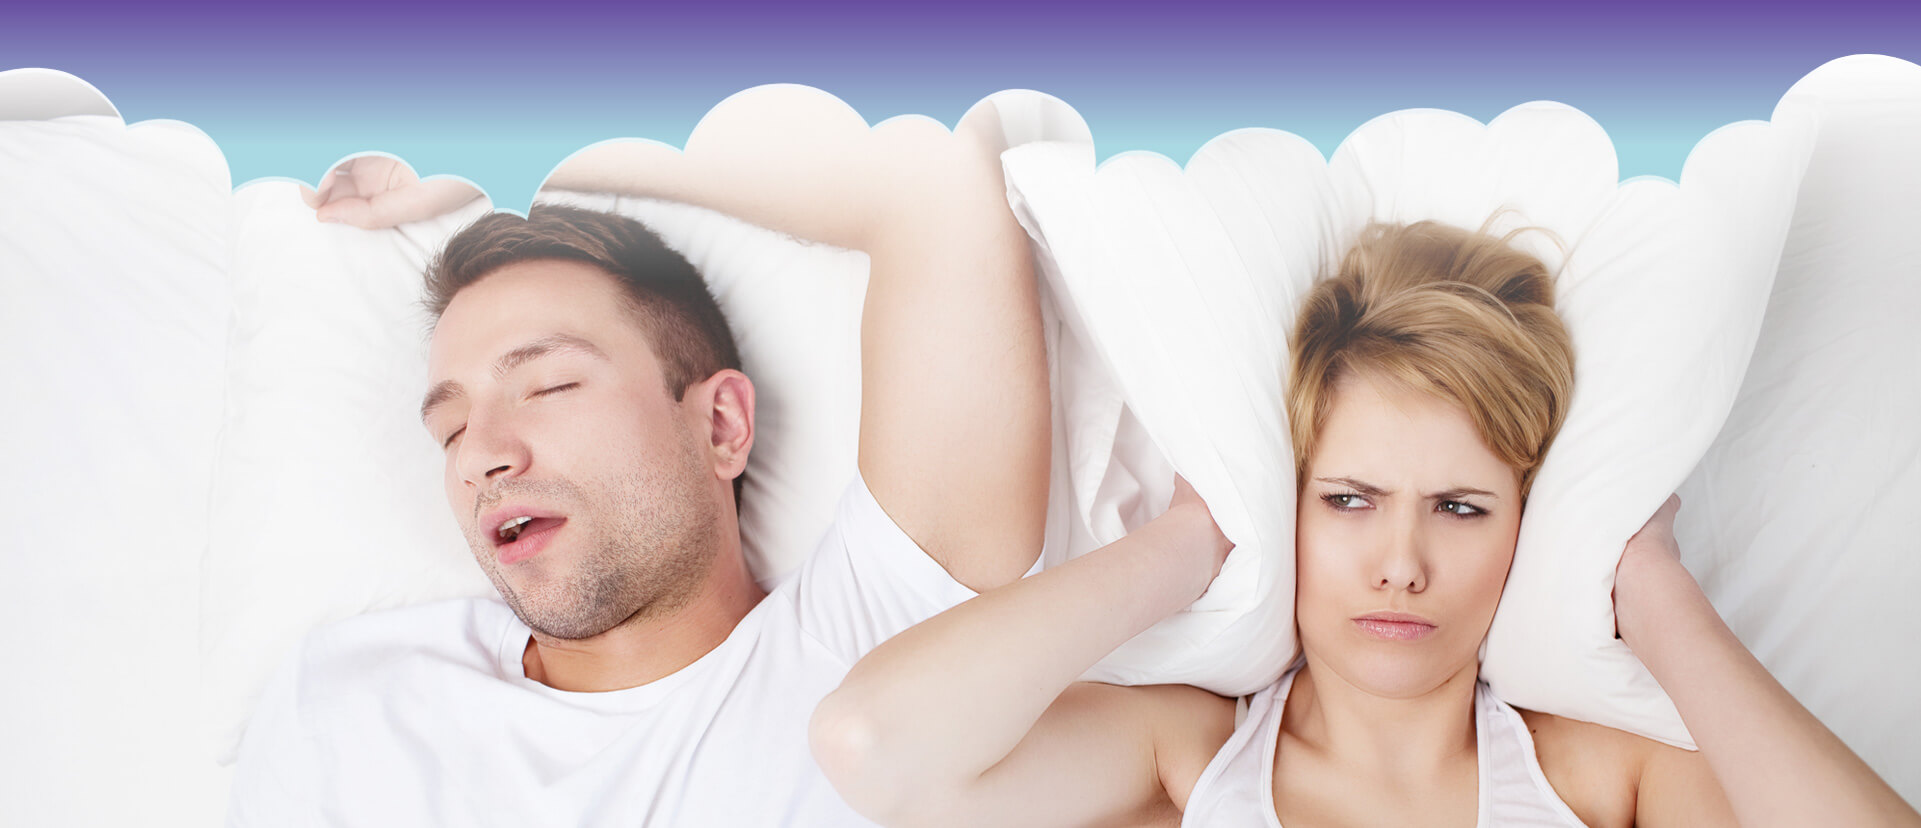 Male snoring while female is disturbed and having a pillow covering her ears